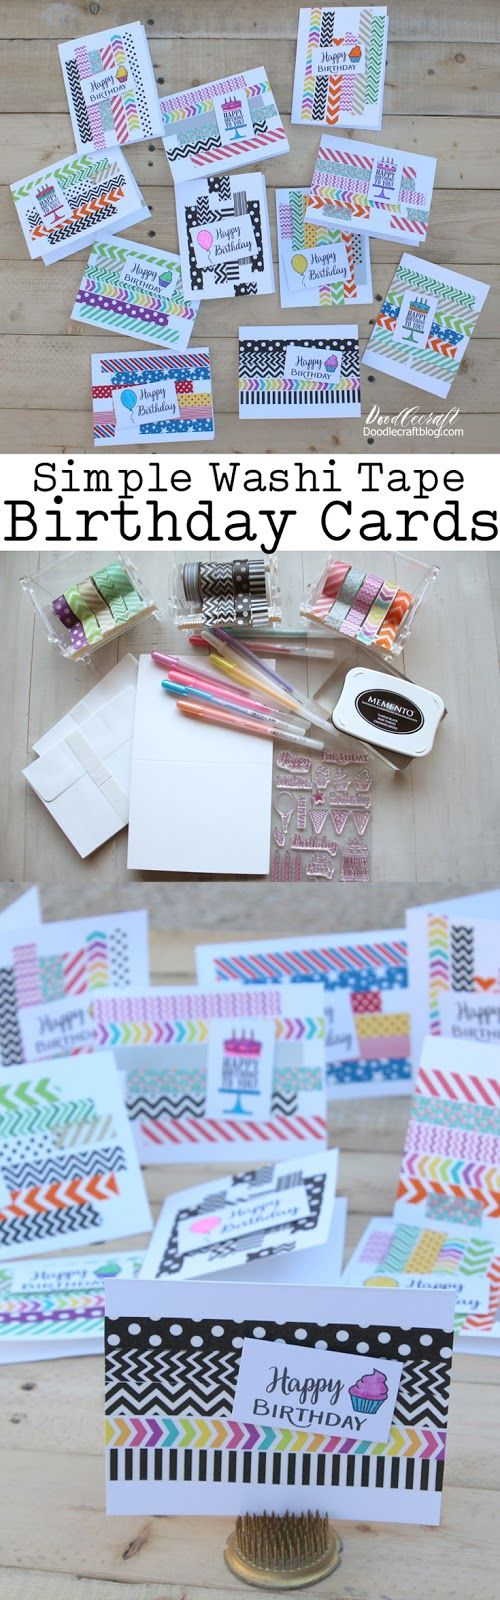 Simple Washi Tape Birthday Cards: Papercrafting